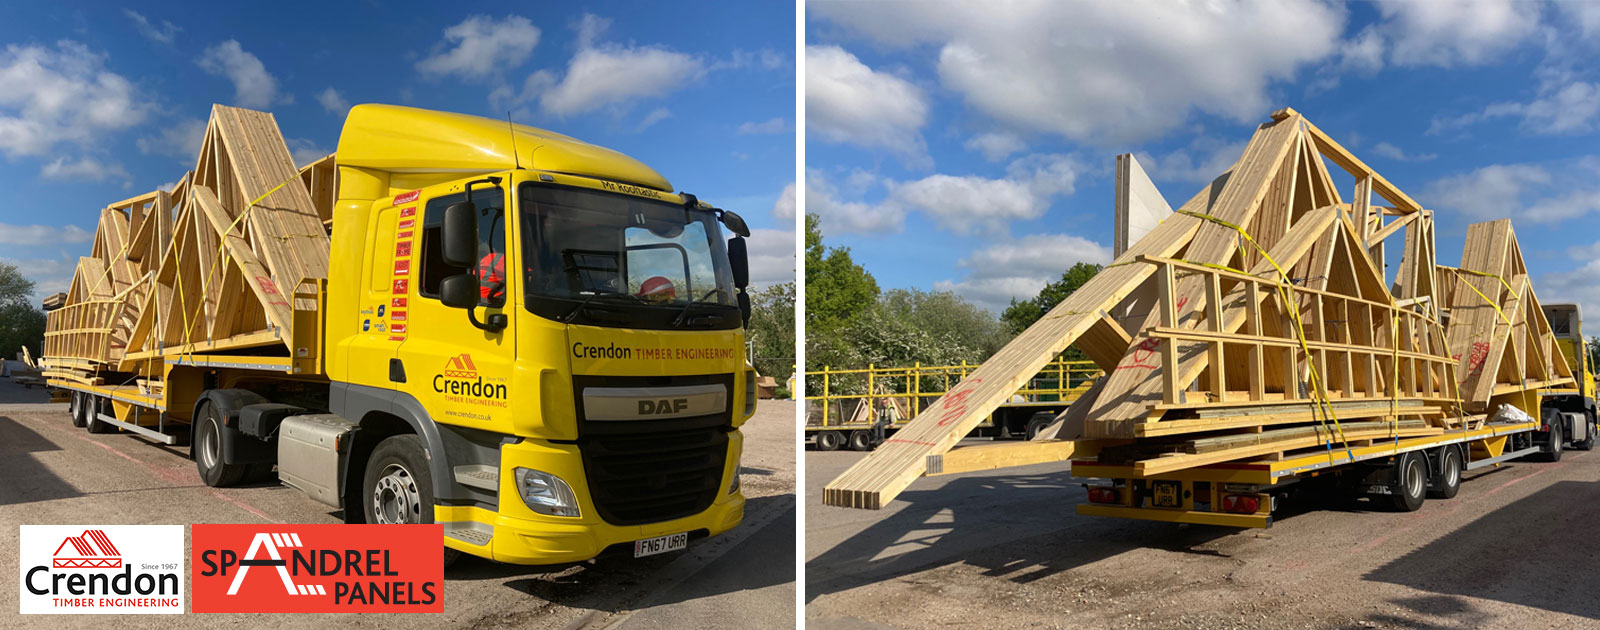 Another Full Load of Roof Trusses Delivered